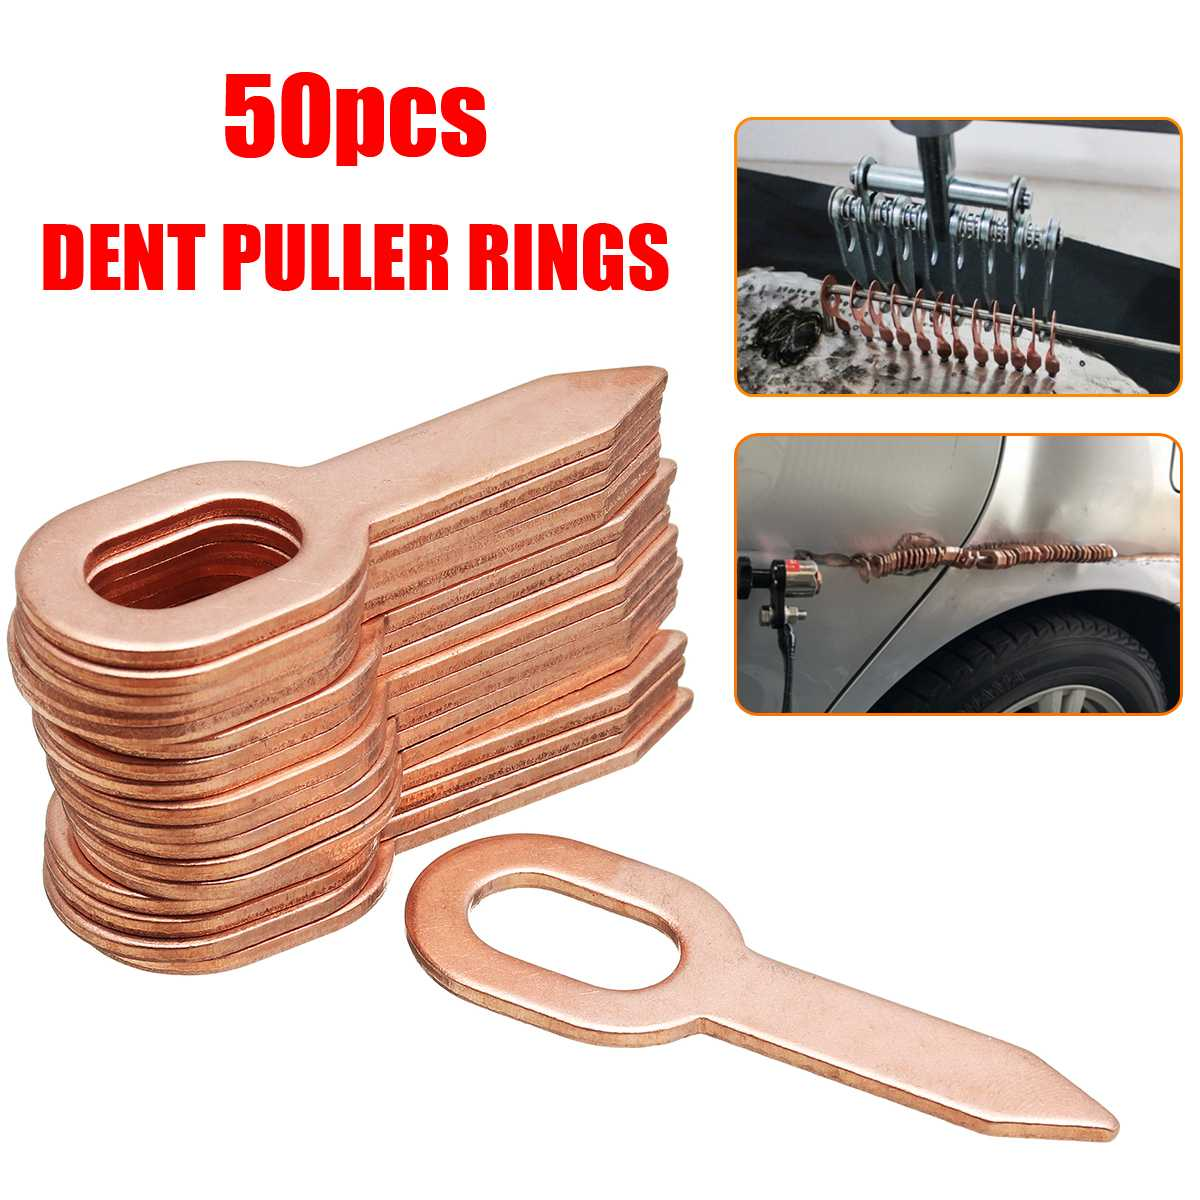 50pcs Copper Plated Oval Dent Puller Rings Car Body Paintless Dent Lifter Repair Tool Puller Kit Dent Removal Washer Tool